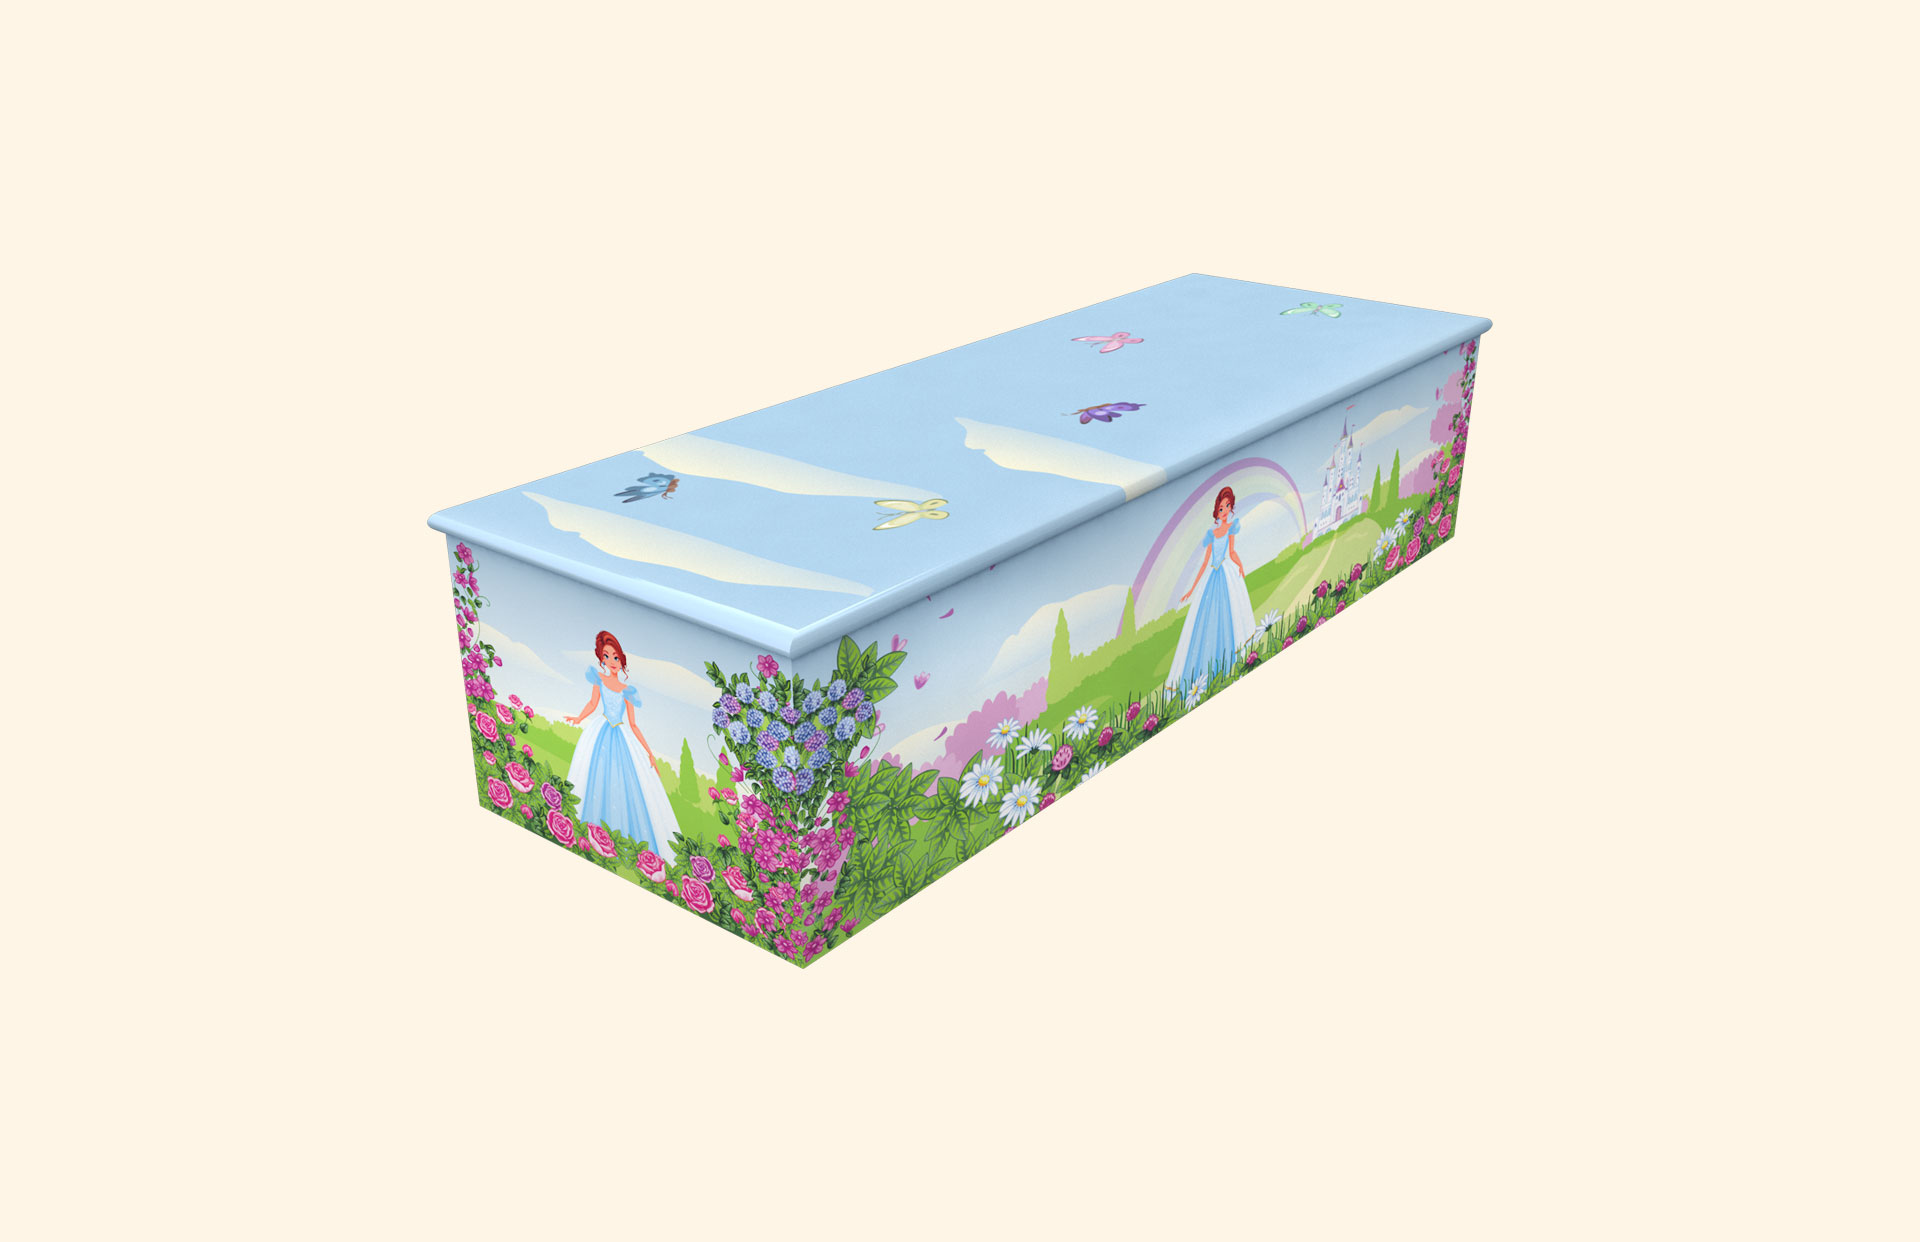 Rose Princess child casket